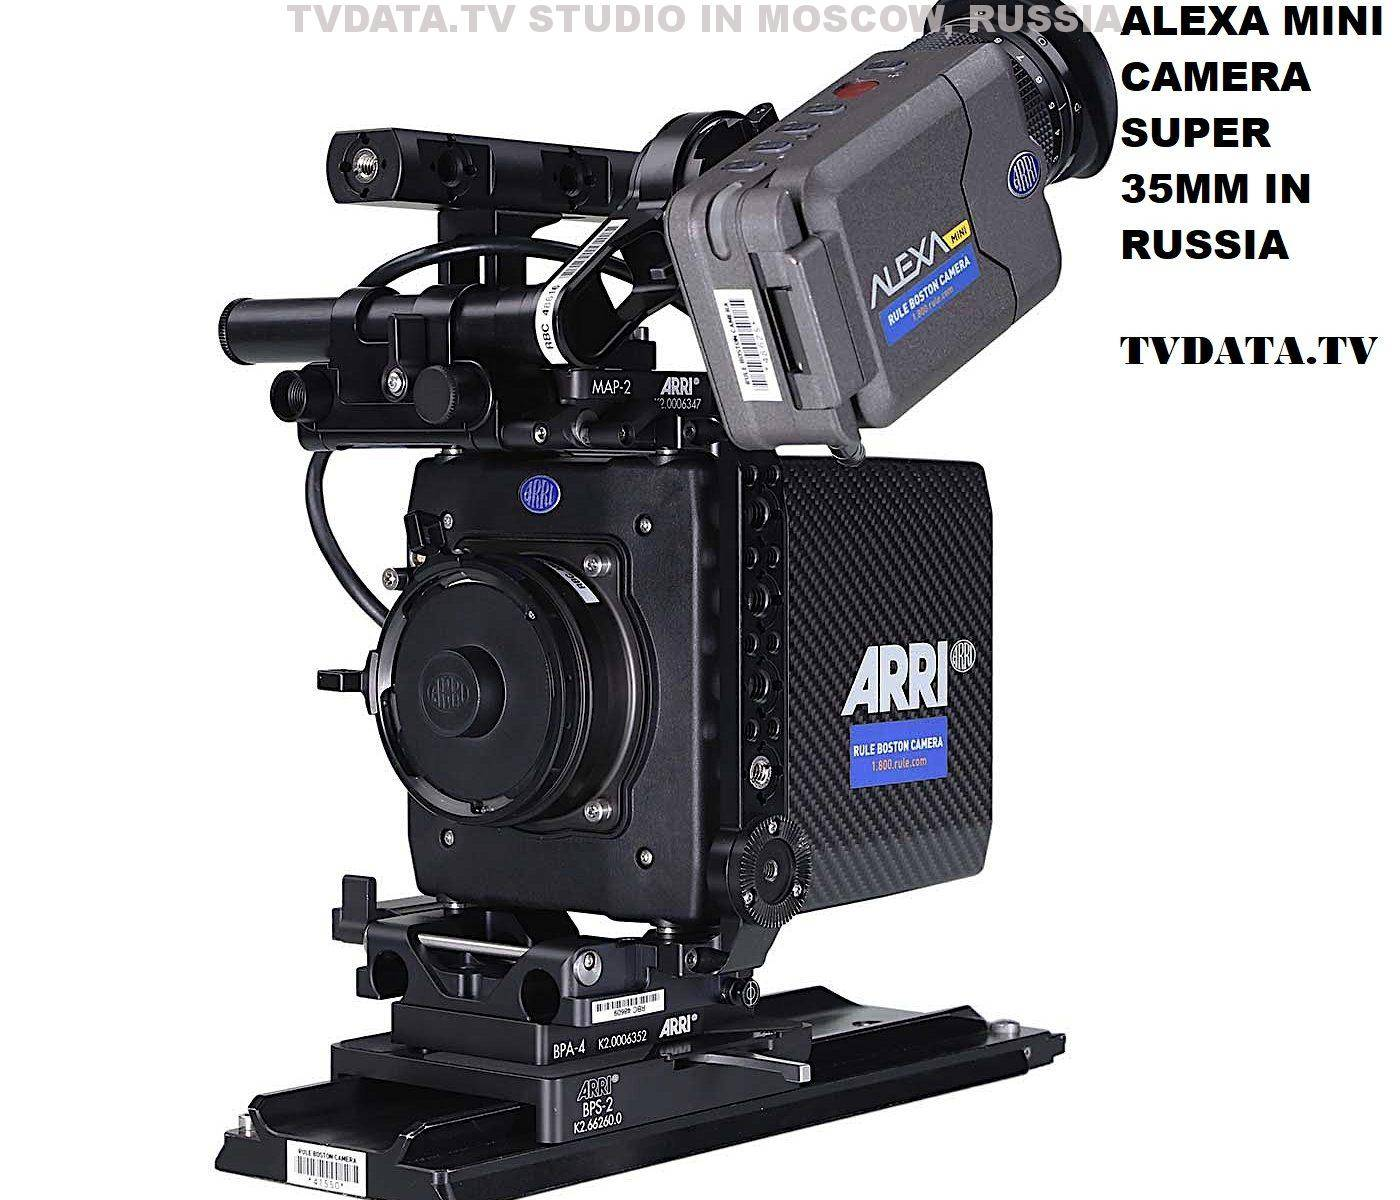 RENT ARRI ALEXA MINI CAMERA SUPER 35MM IN RUSSIA